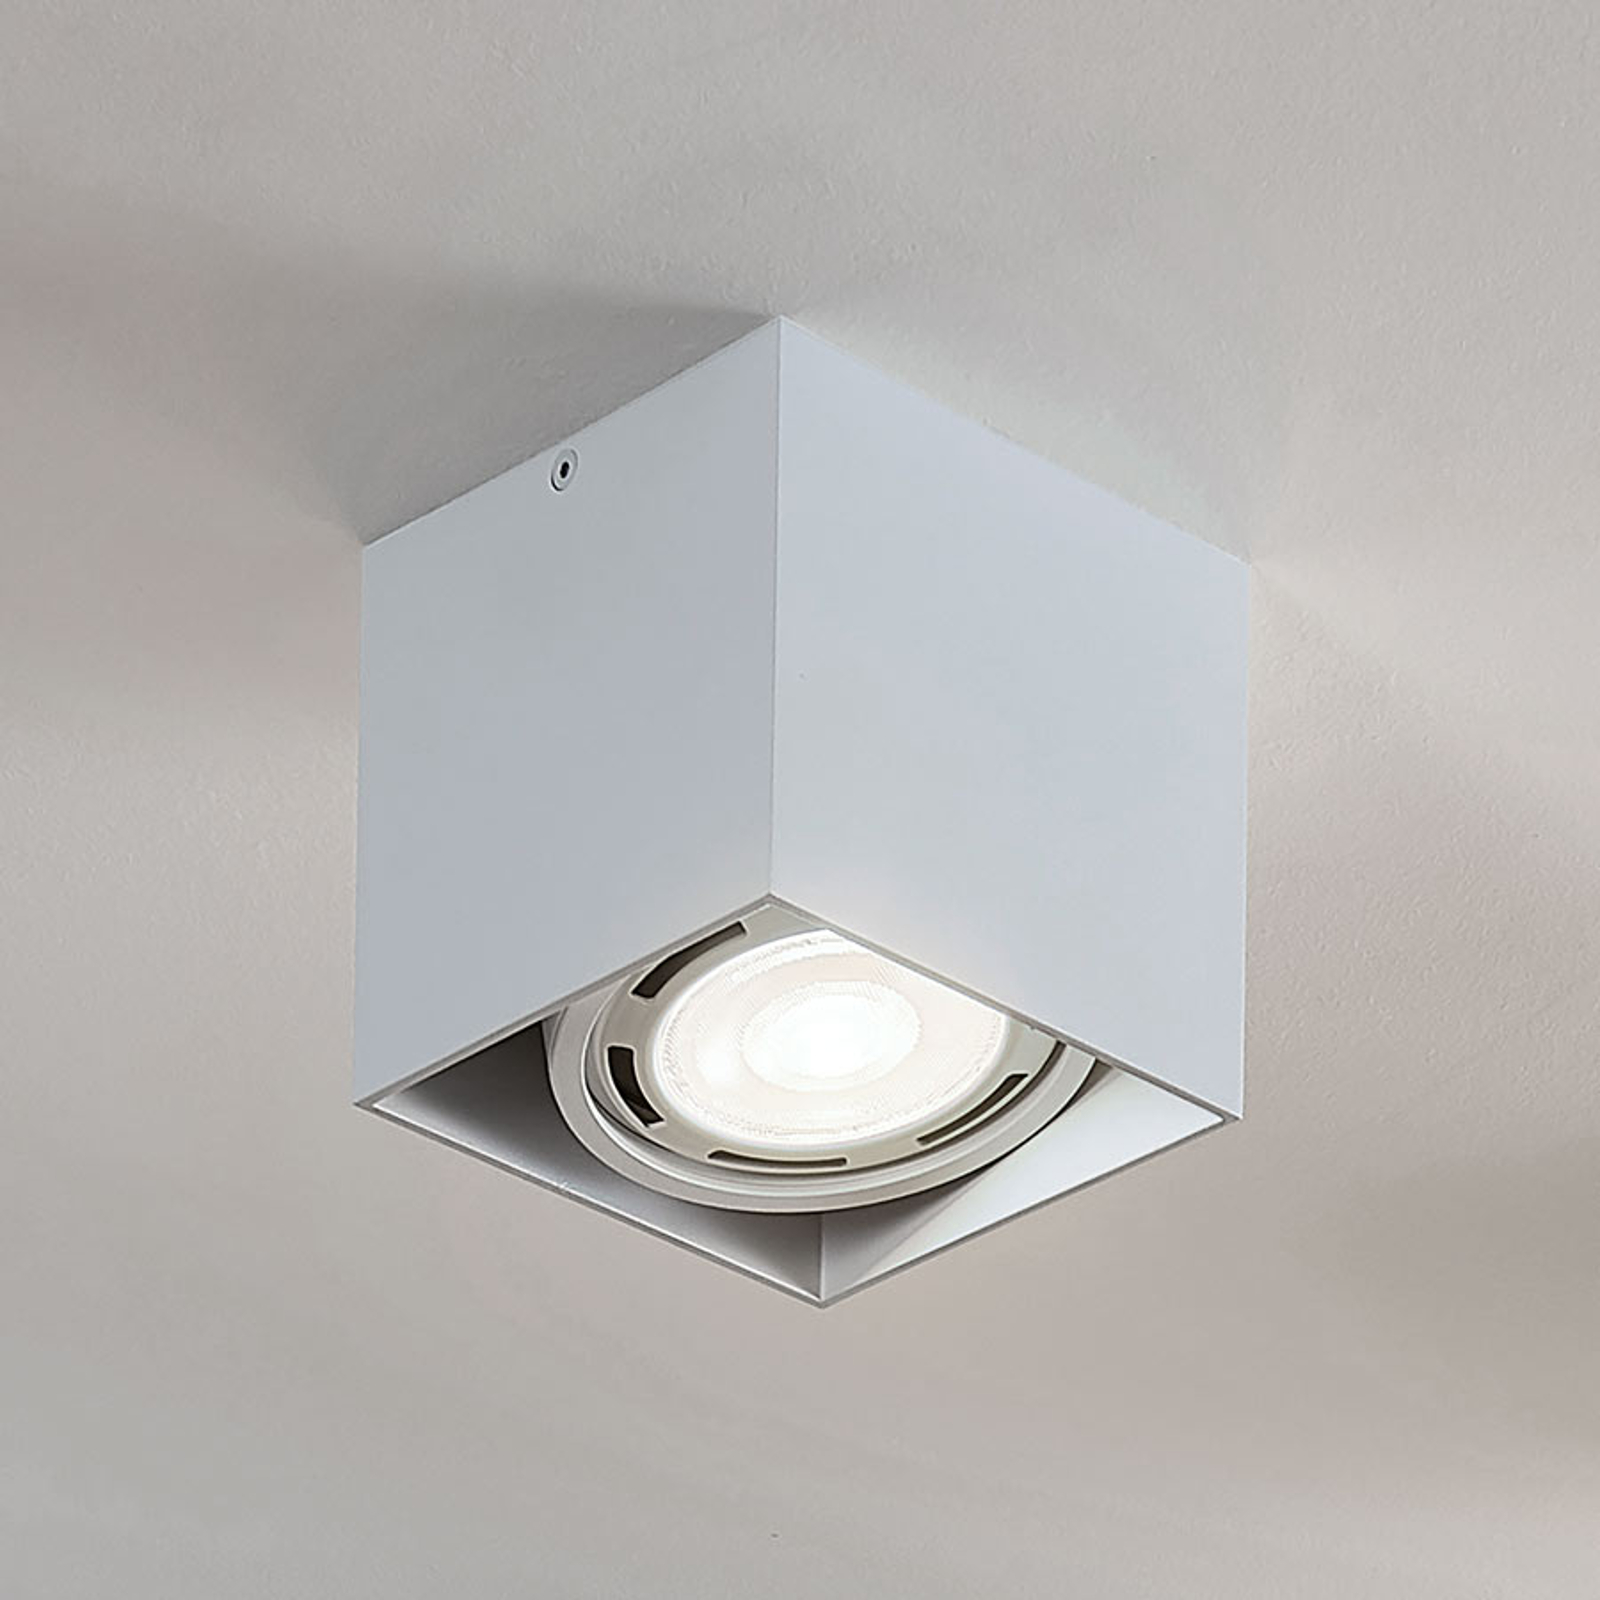 LED downlight Rosalie, dimbaar 1-lamp hoekig, wit